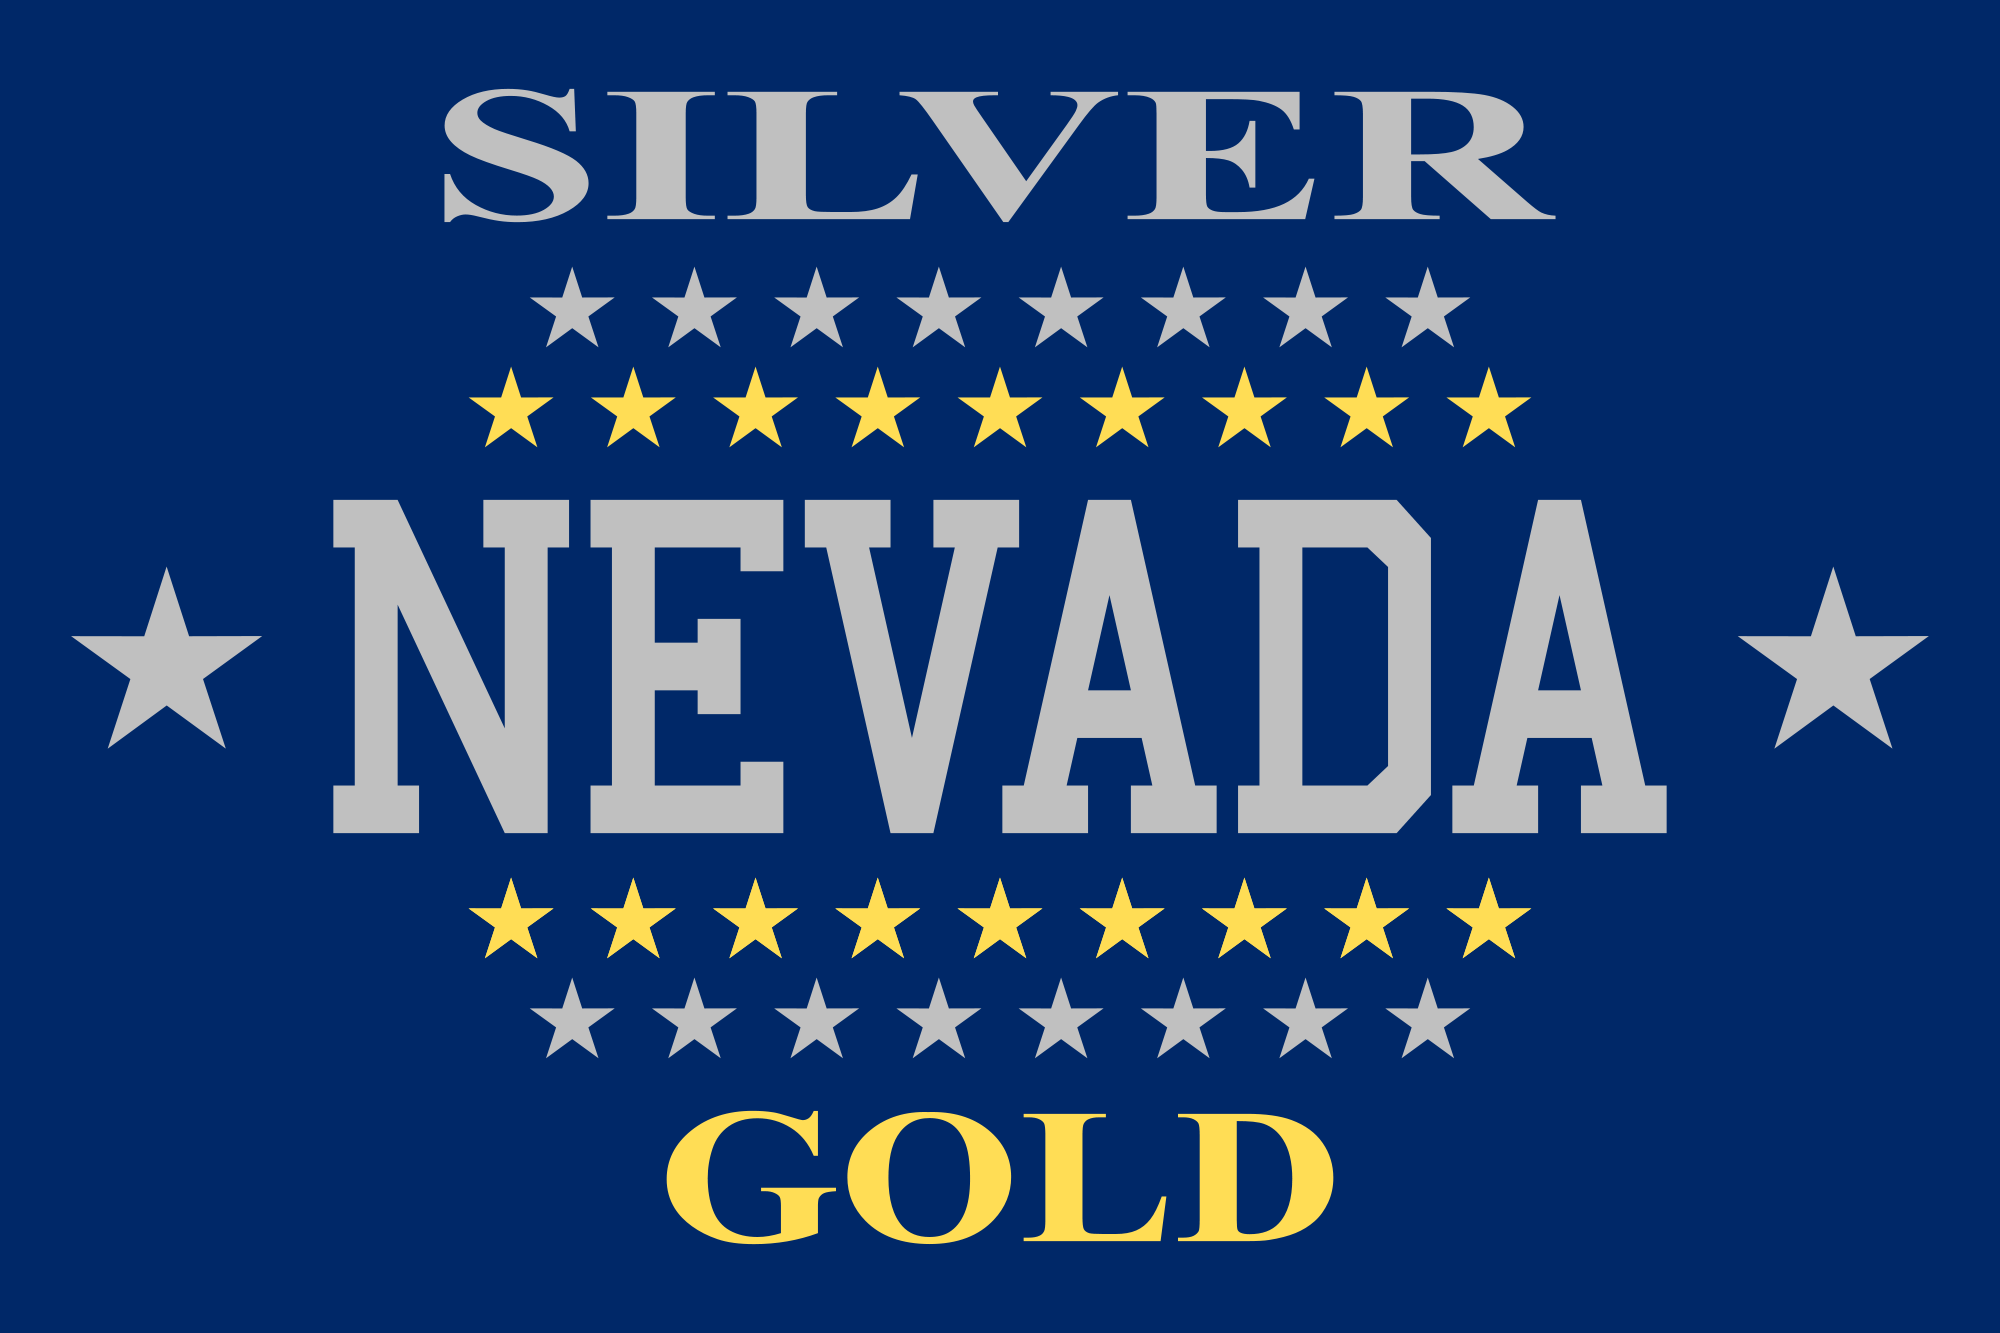 Nevada Flag, 1905 to 1915 State flags, Nevada flag, Flag